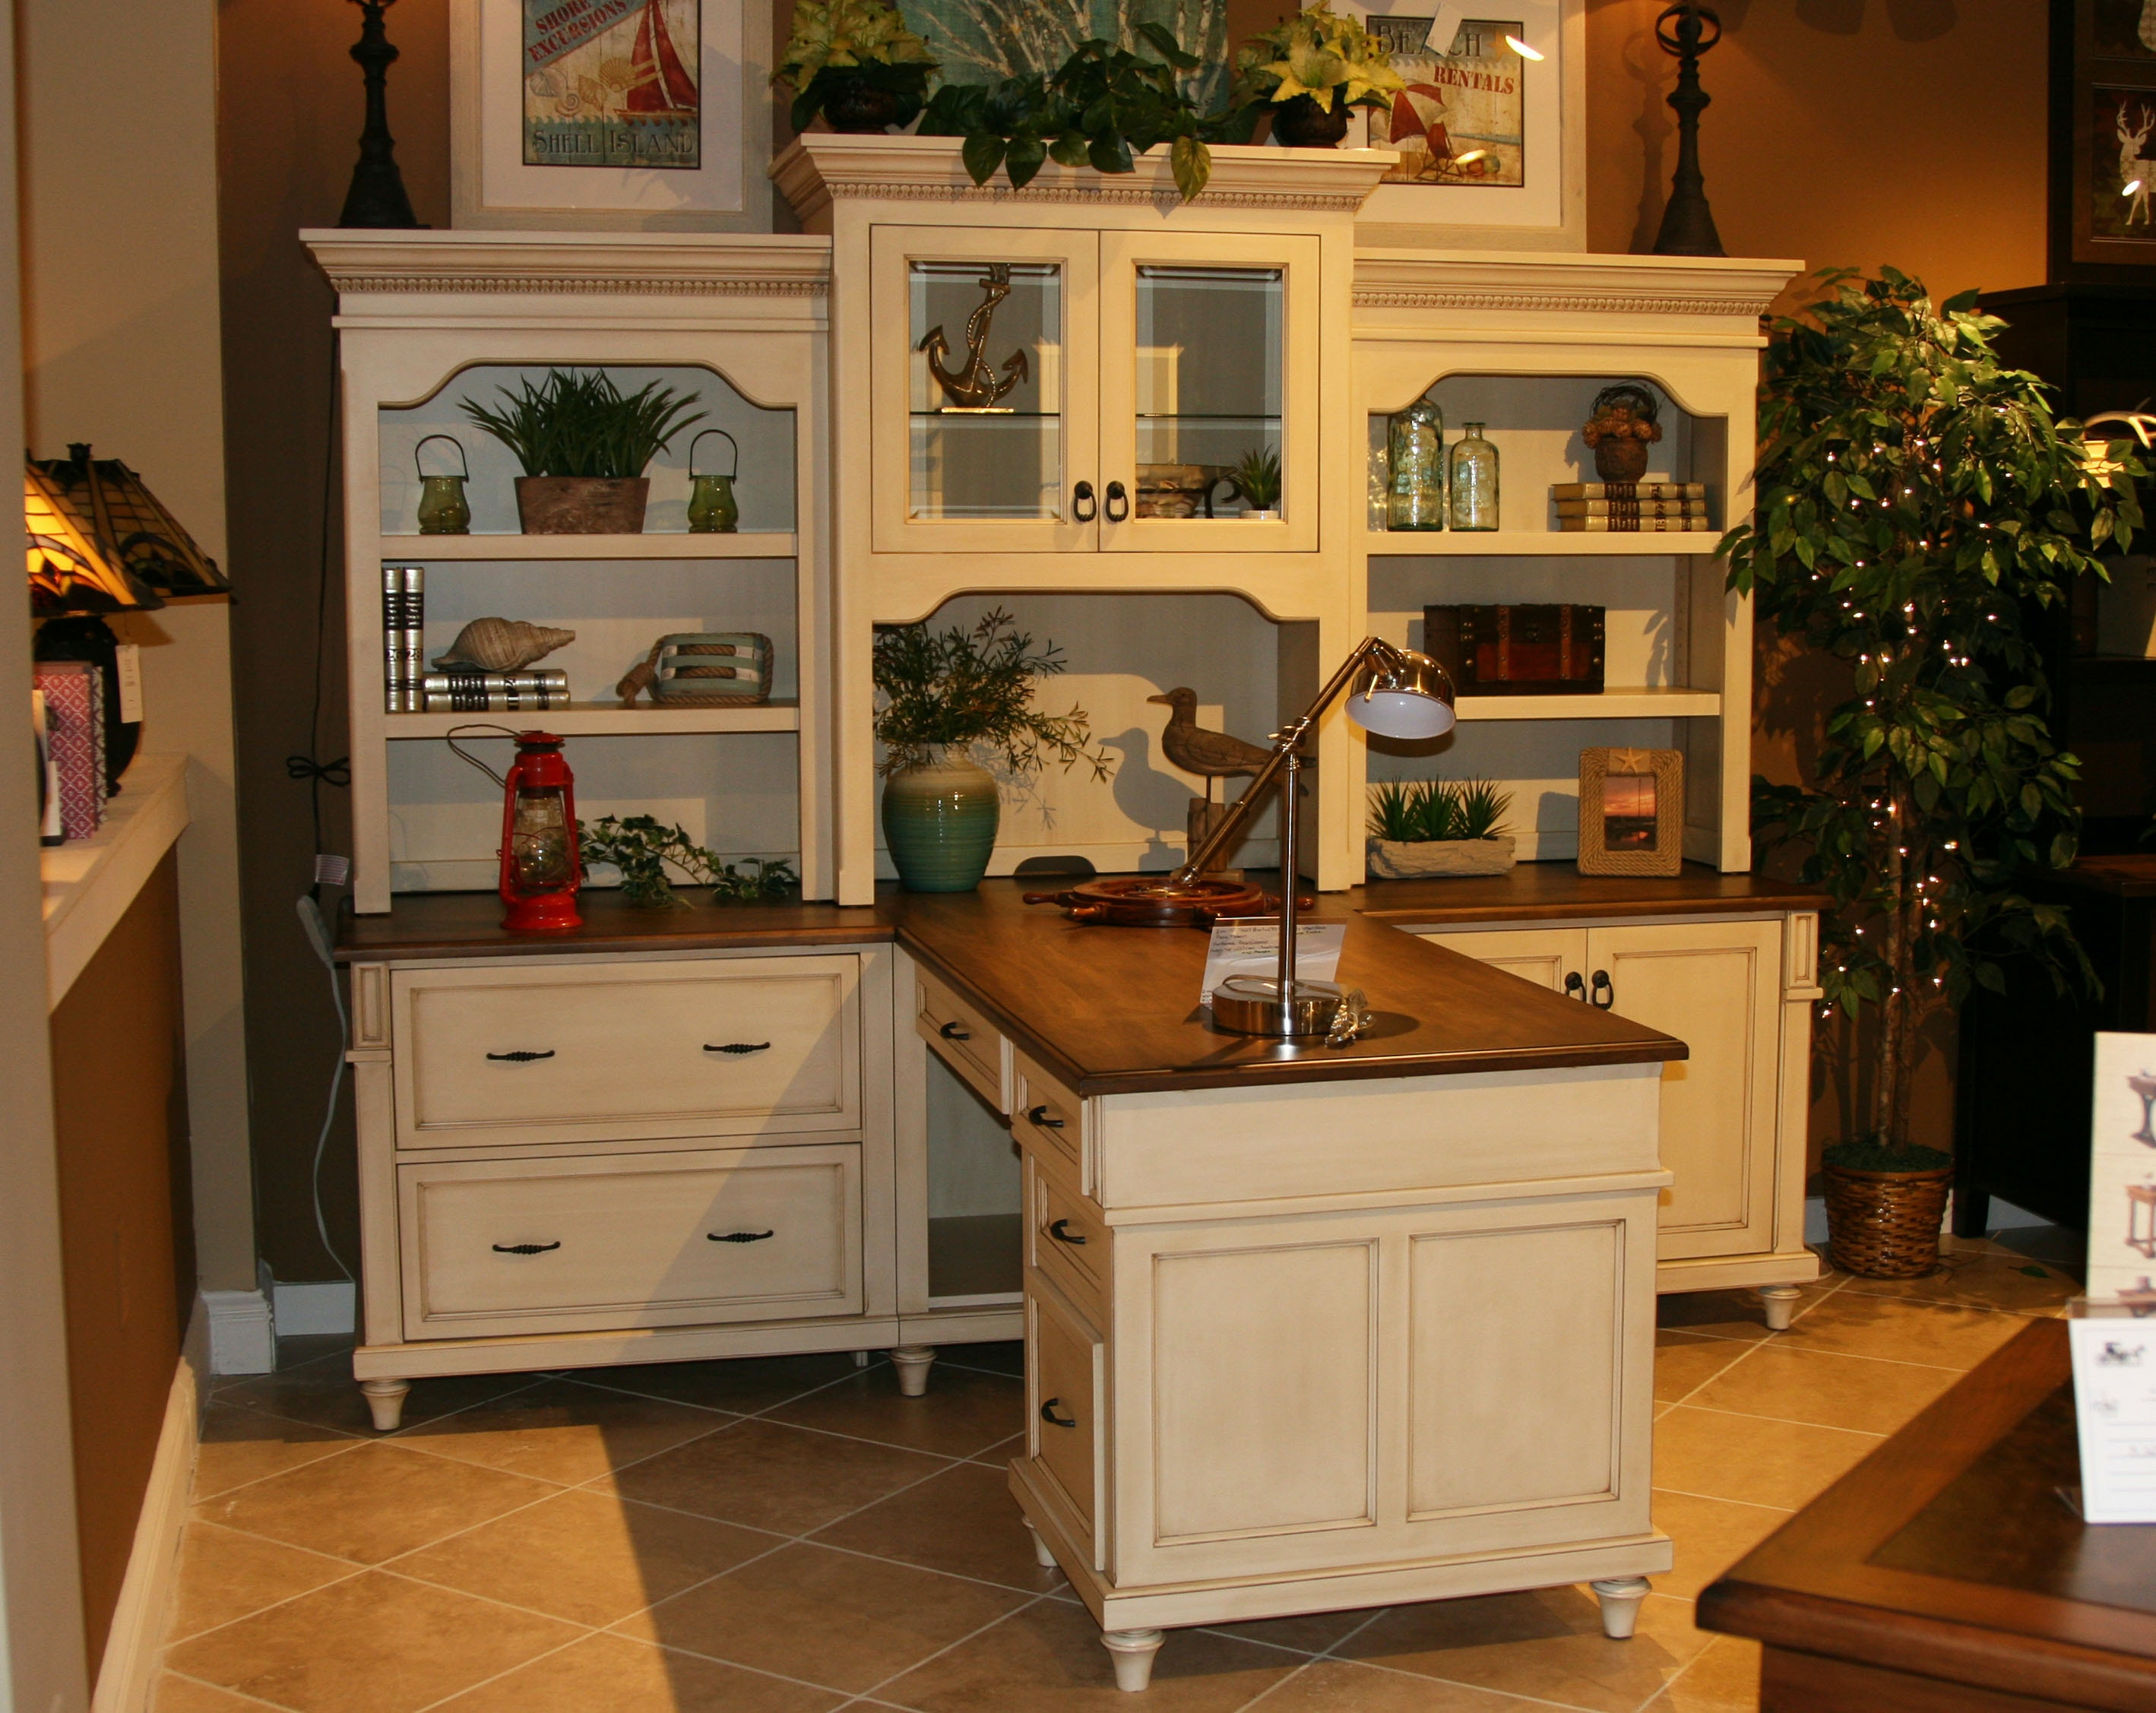 Charmant Home Office Bridgepoint Collection By Amish Oak And Cherry (SKU: Partner  Desk) Is Available At Hickory Furniture Mart In Hickory, NC And Nationwide.